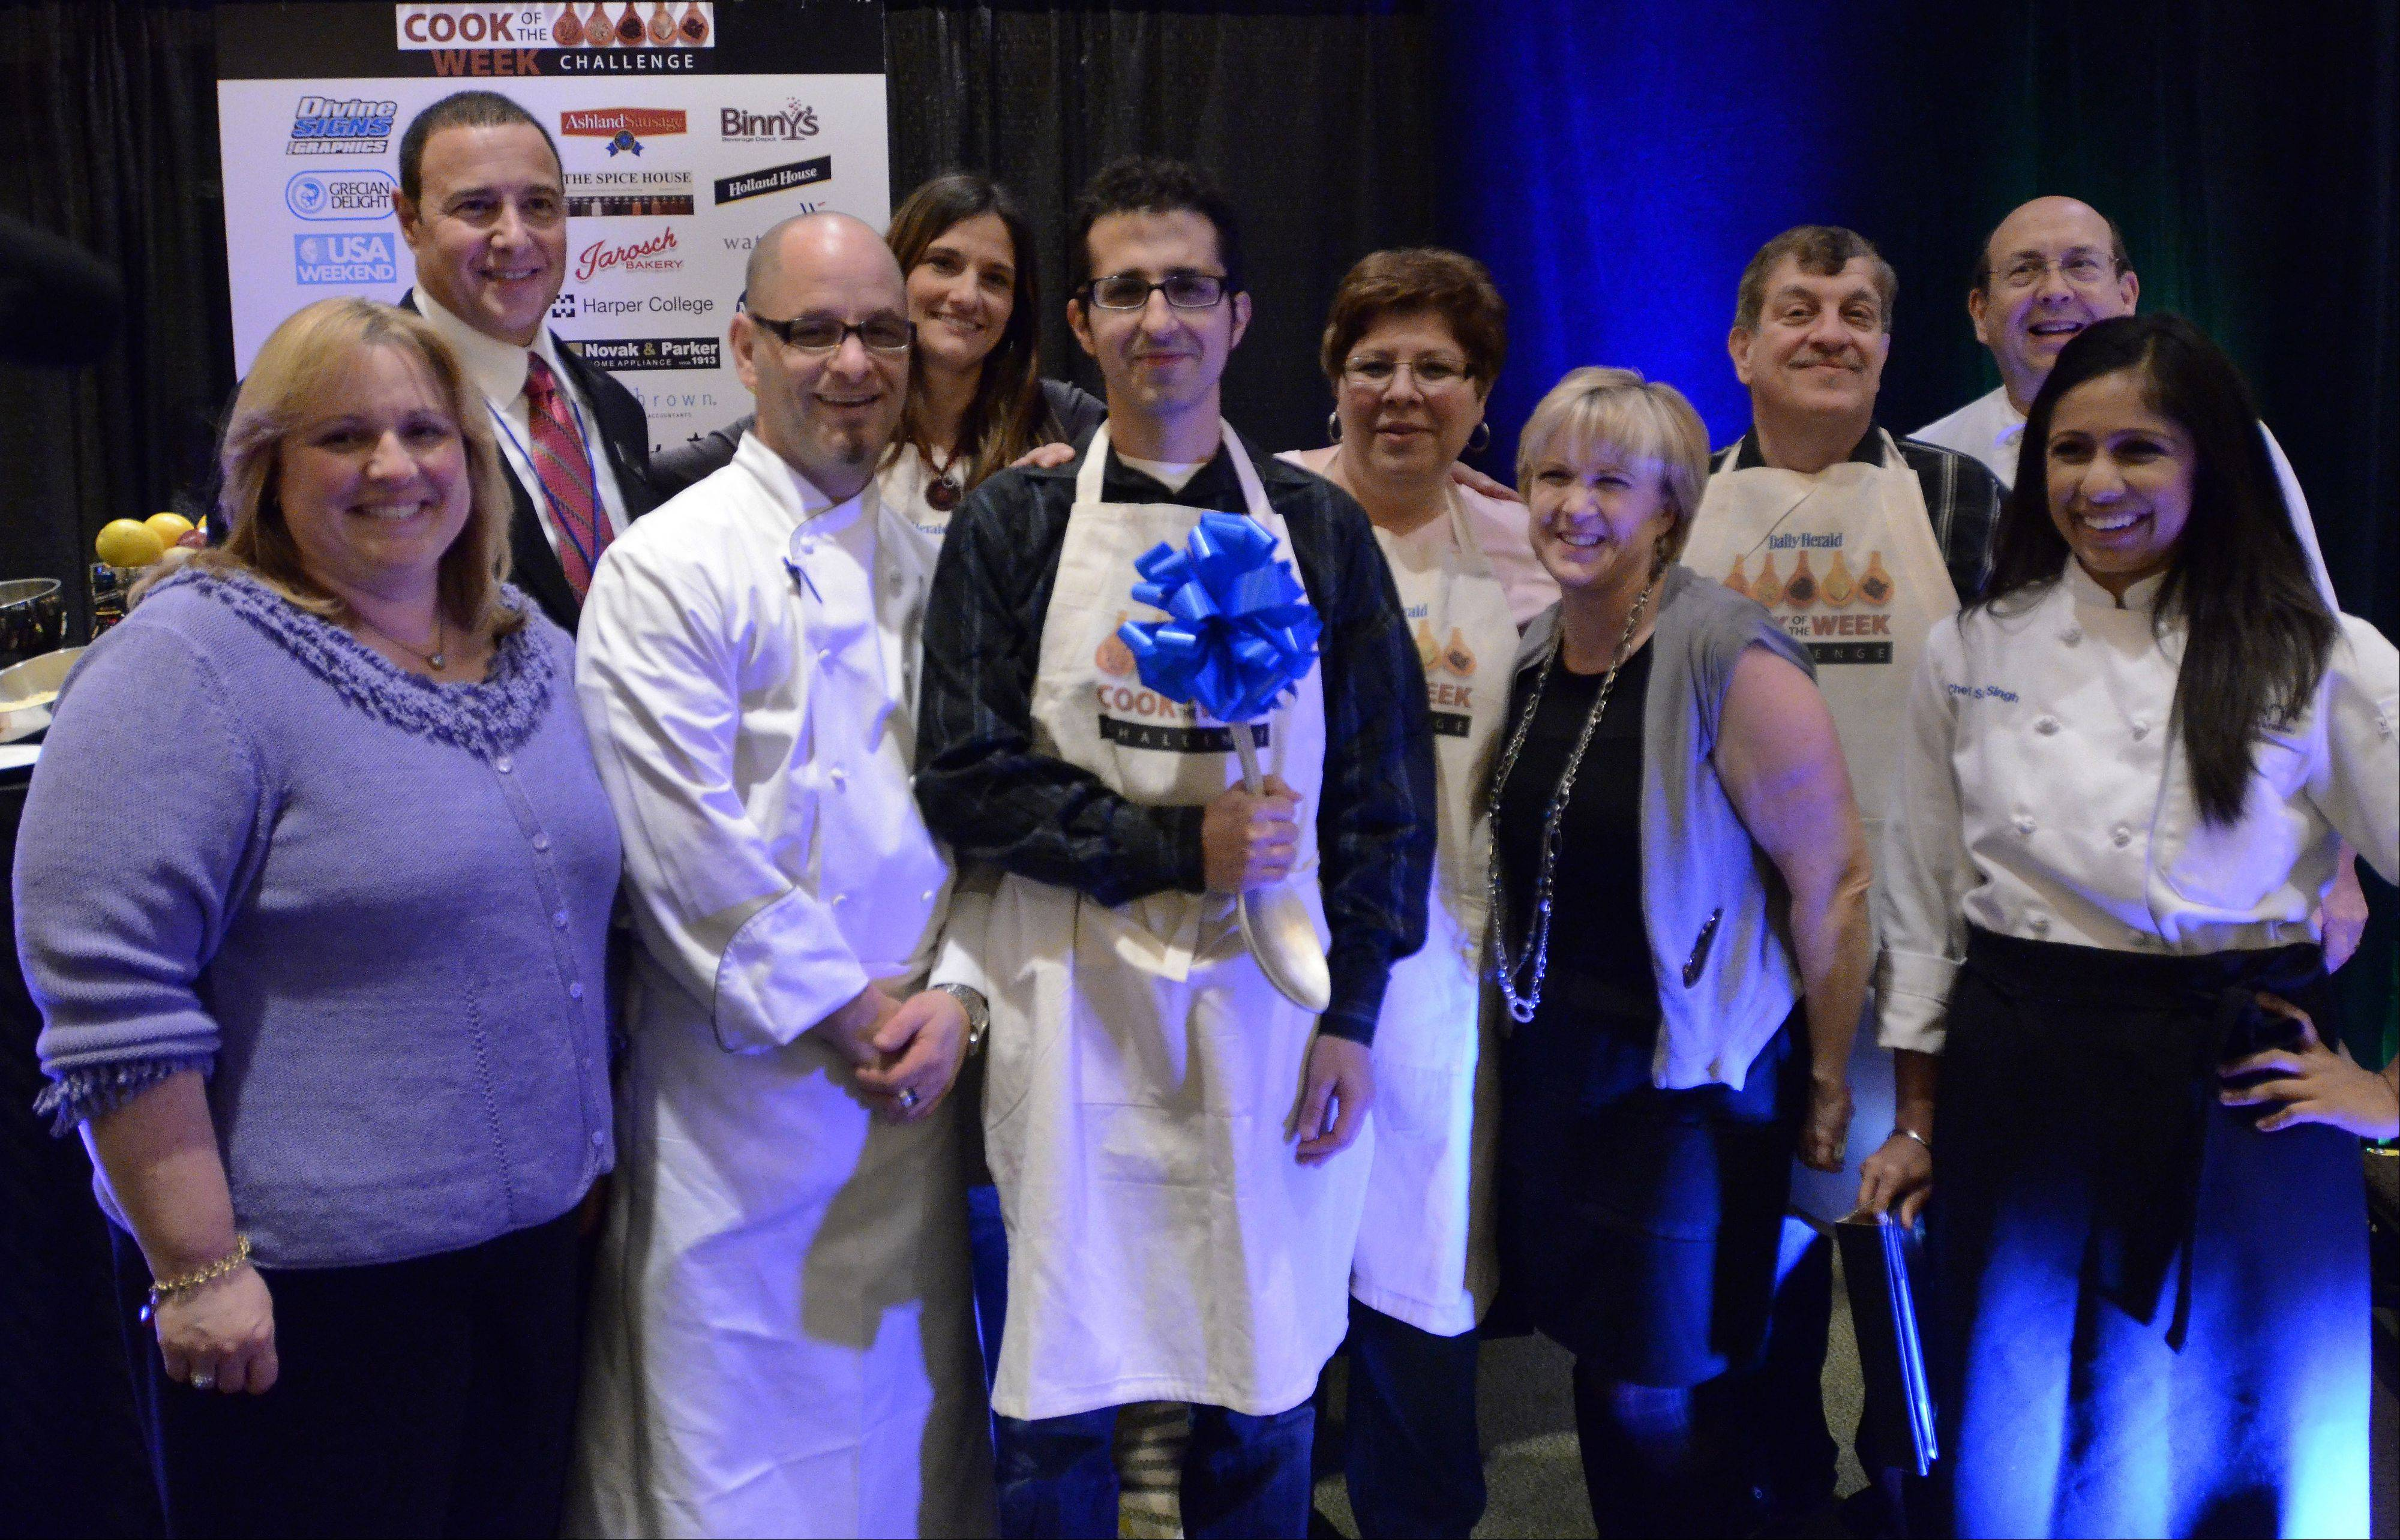 Standing in the center among contestants and judges is Michael Pennisi of Carpentersville, named Cook of the year 2012 after winning the Cook of the Week Challenge Cookoff with his dish Salmon Saute with spicy sweet potatoes and brussels slaw.